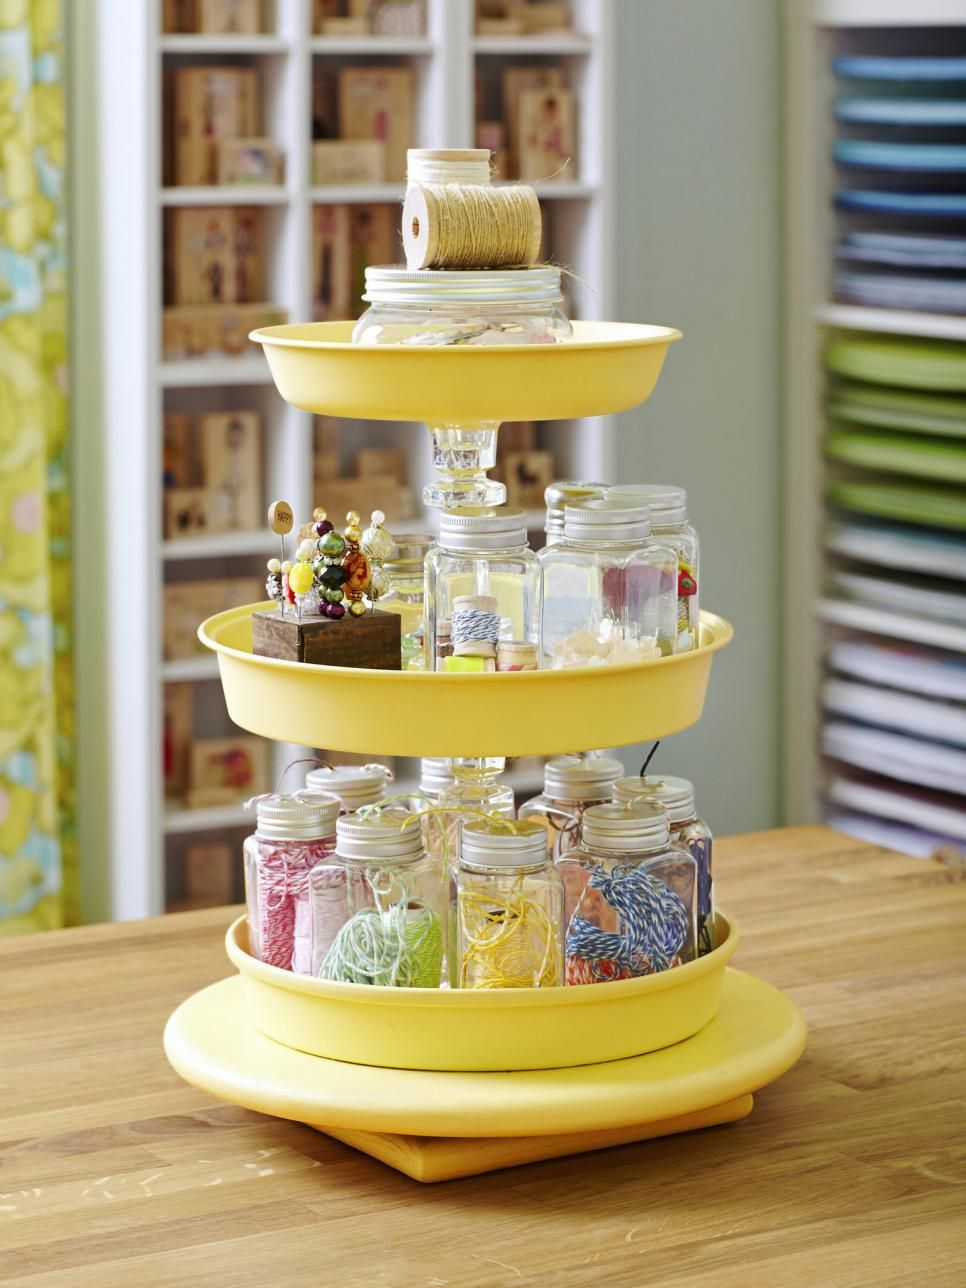 <i>HGTV Magazine</i> was awed by one reader's impressively organized craft room. Luckily, this DIYer's ideas are easy to copy!